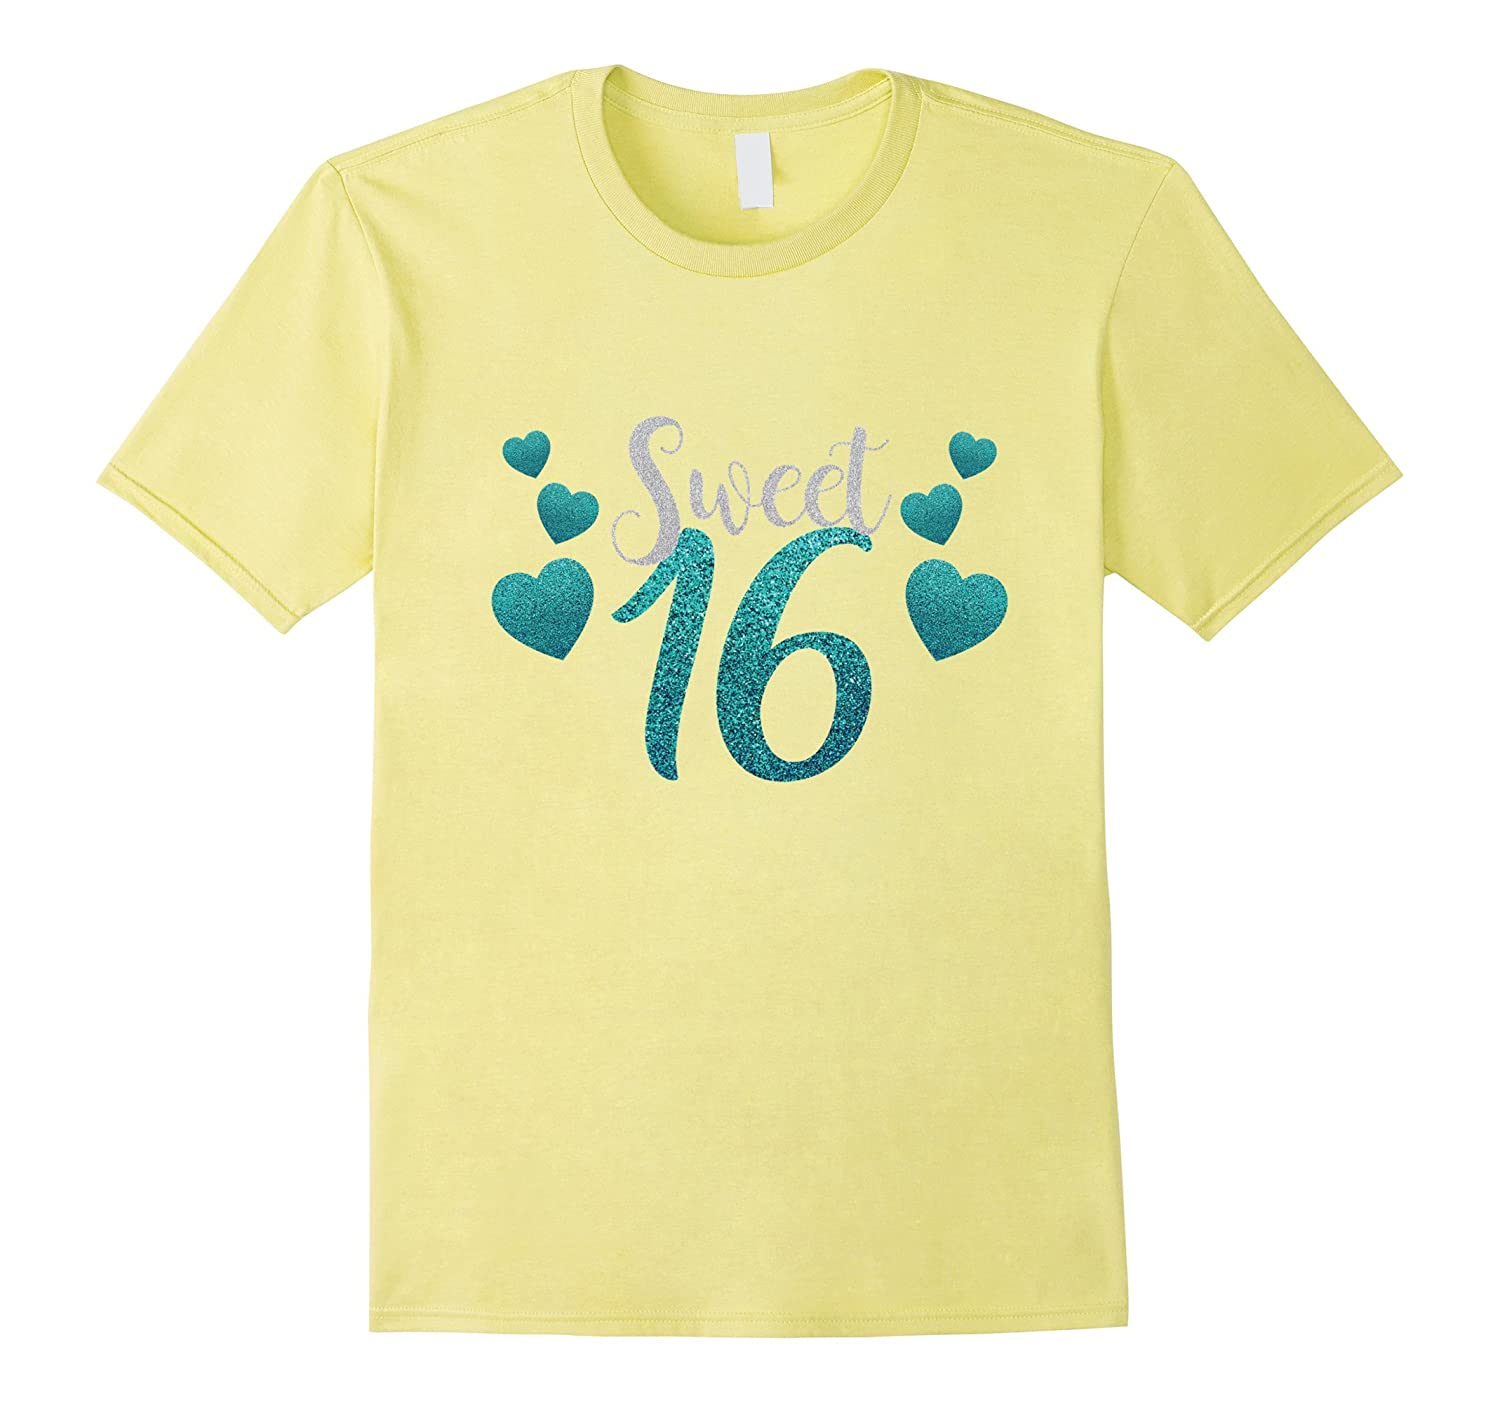 a7862798 Sweet 16 T-Shirts for Girls-PL – Polozatee